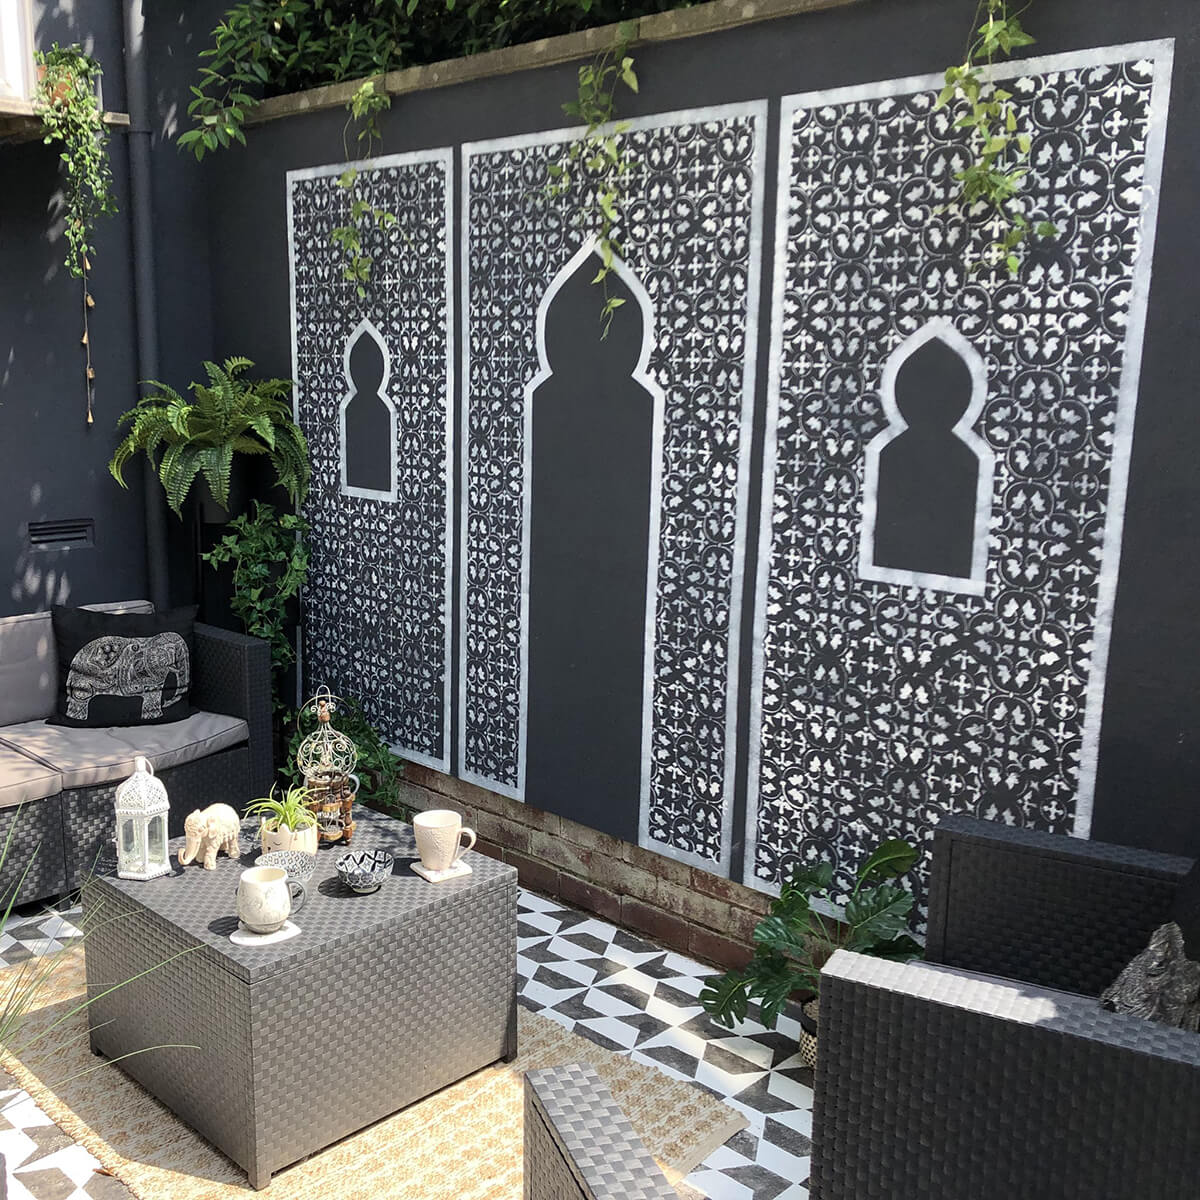 Black and White Moroccan Inspired Stencil Wall Mural